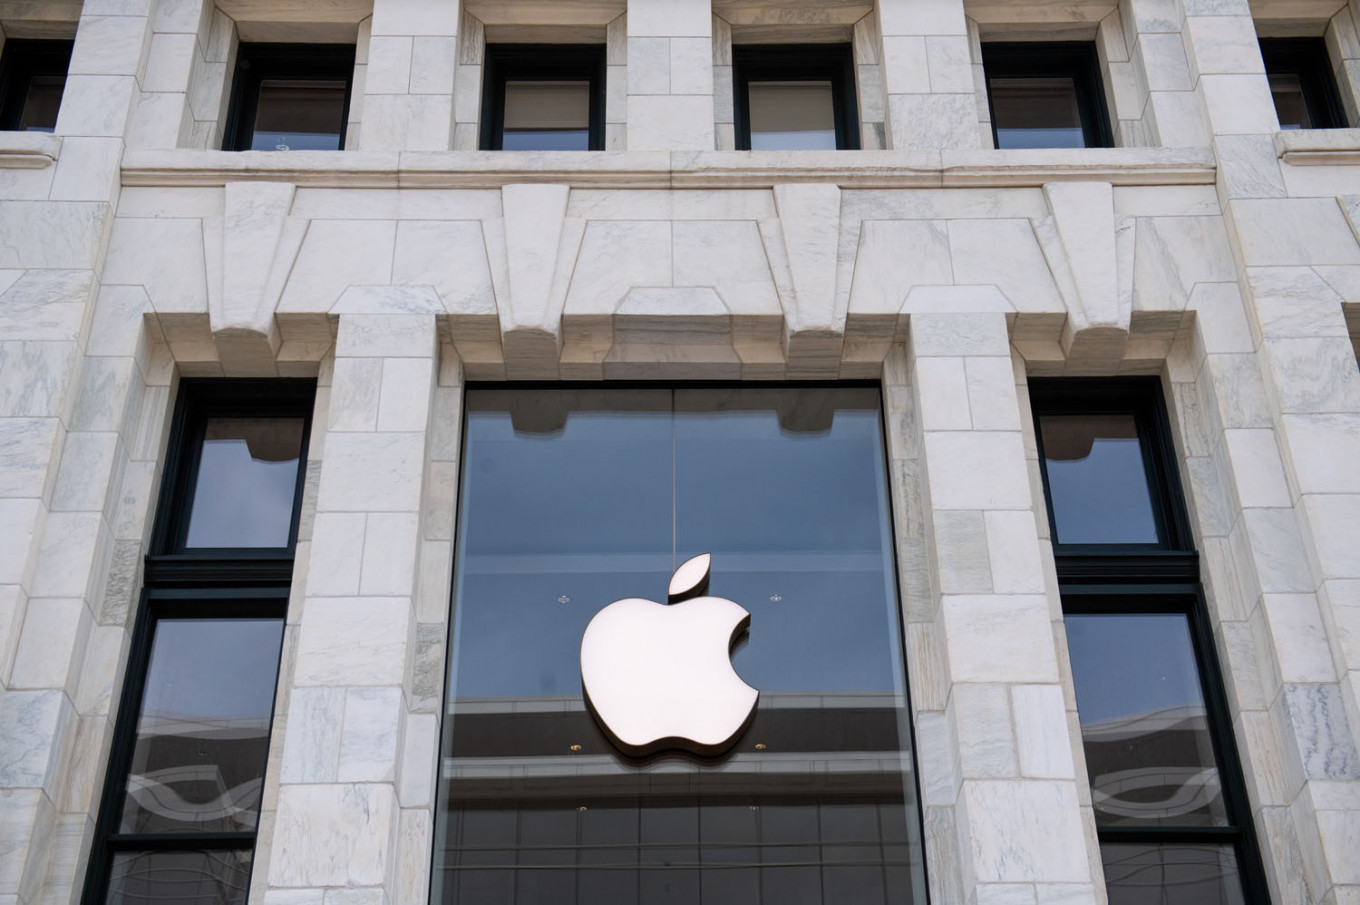 Apple is 'building own search engine to rival Google', reports suggest